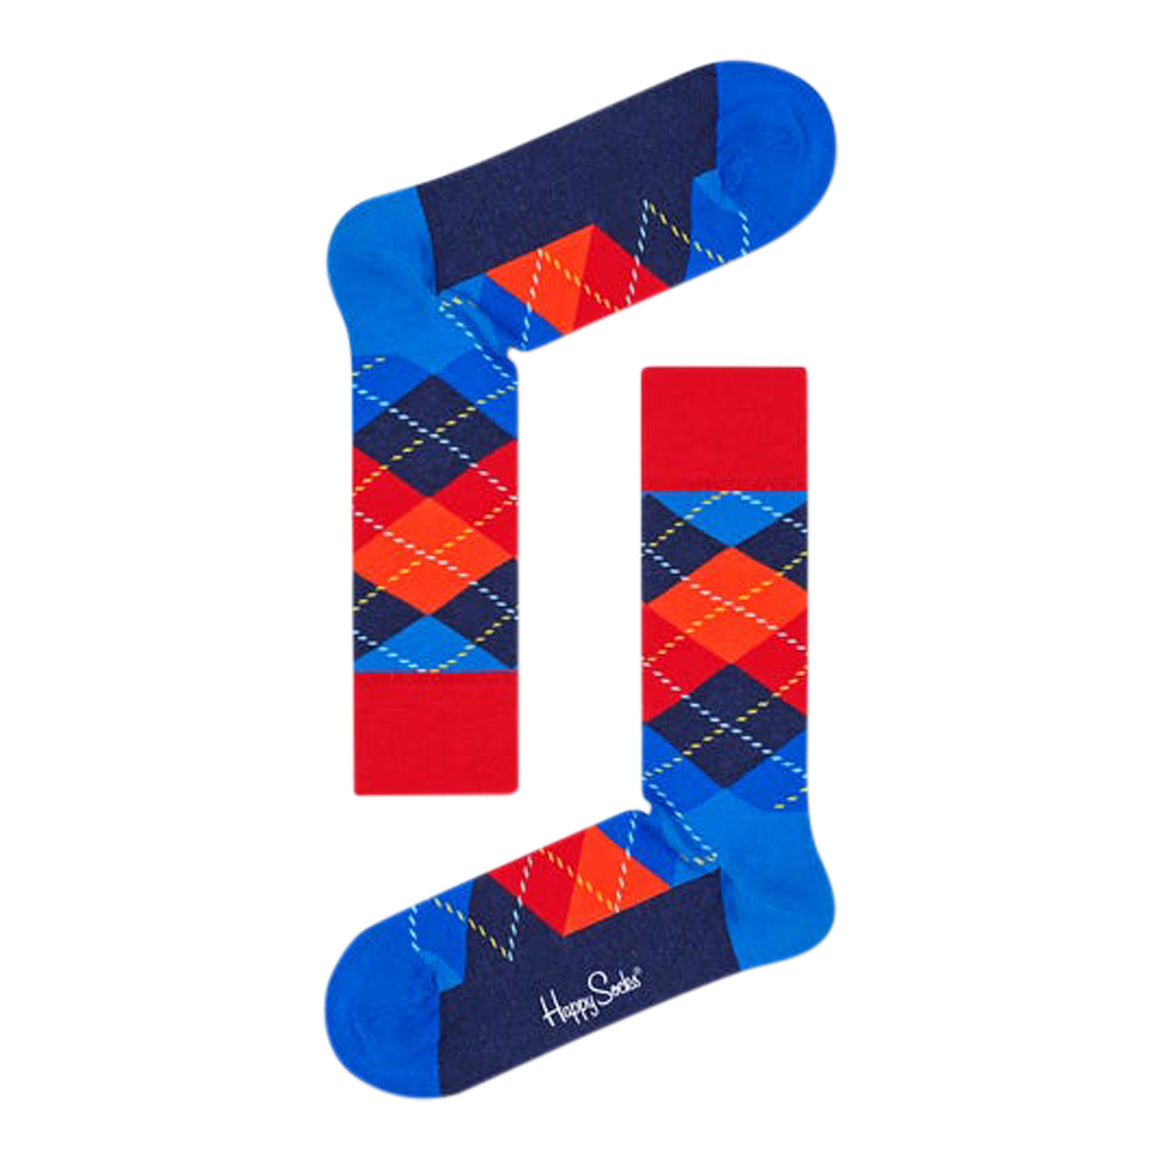 Argyle Socks for Men in Blue & Orange